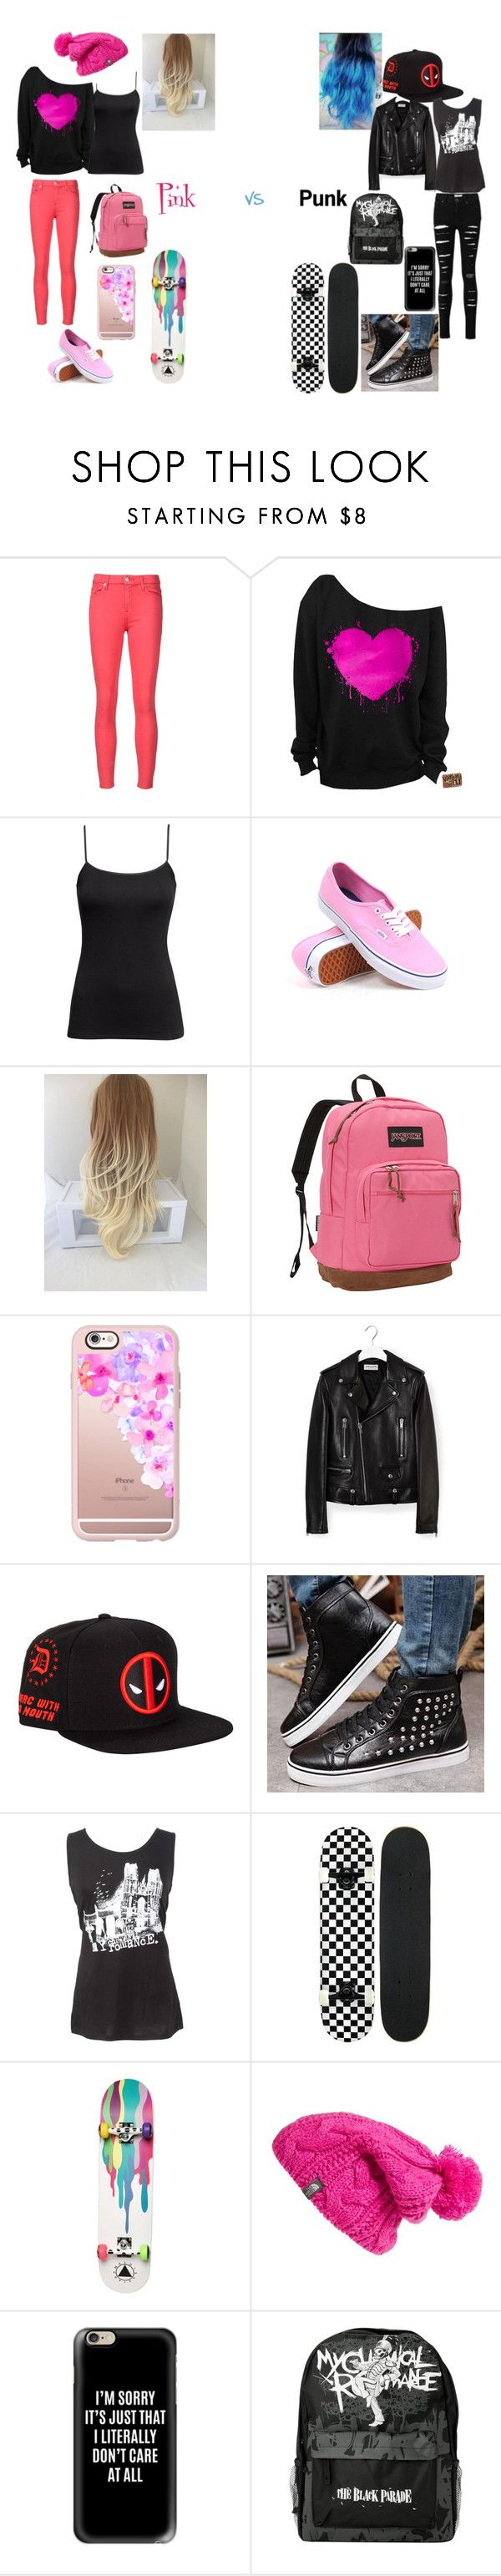 """Pink VS Punk"" by maxxy656 ❤ liked on Polyvore featuring 7 For All Mankind, H&M, Vans, JanSport, Casetify, Yves Saint Laurent, Preppy Boys, Ernesto Esposito and The North Face"